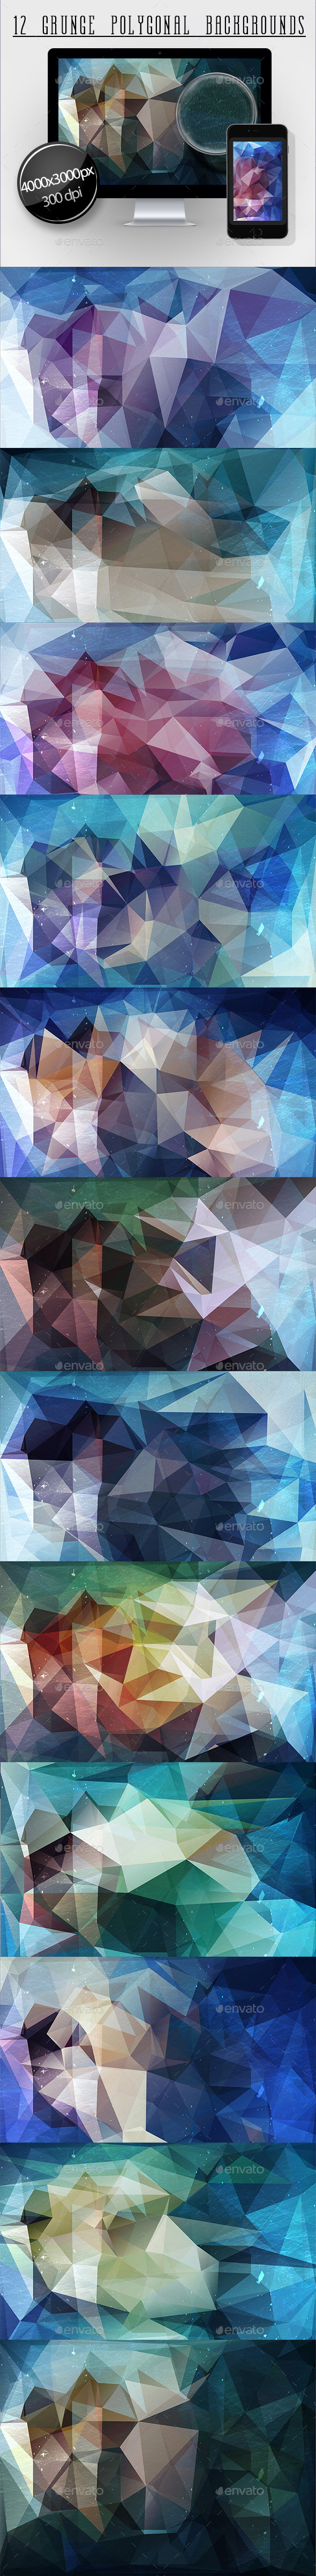 12 Grunge Polygonal Backgrounds